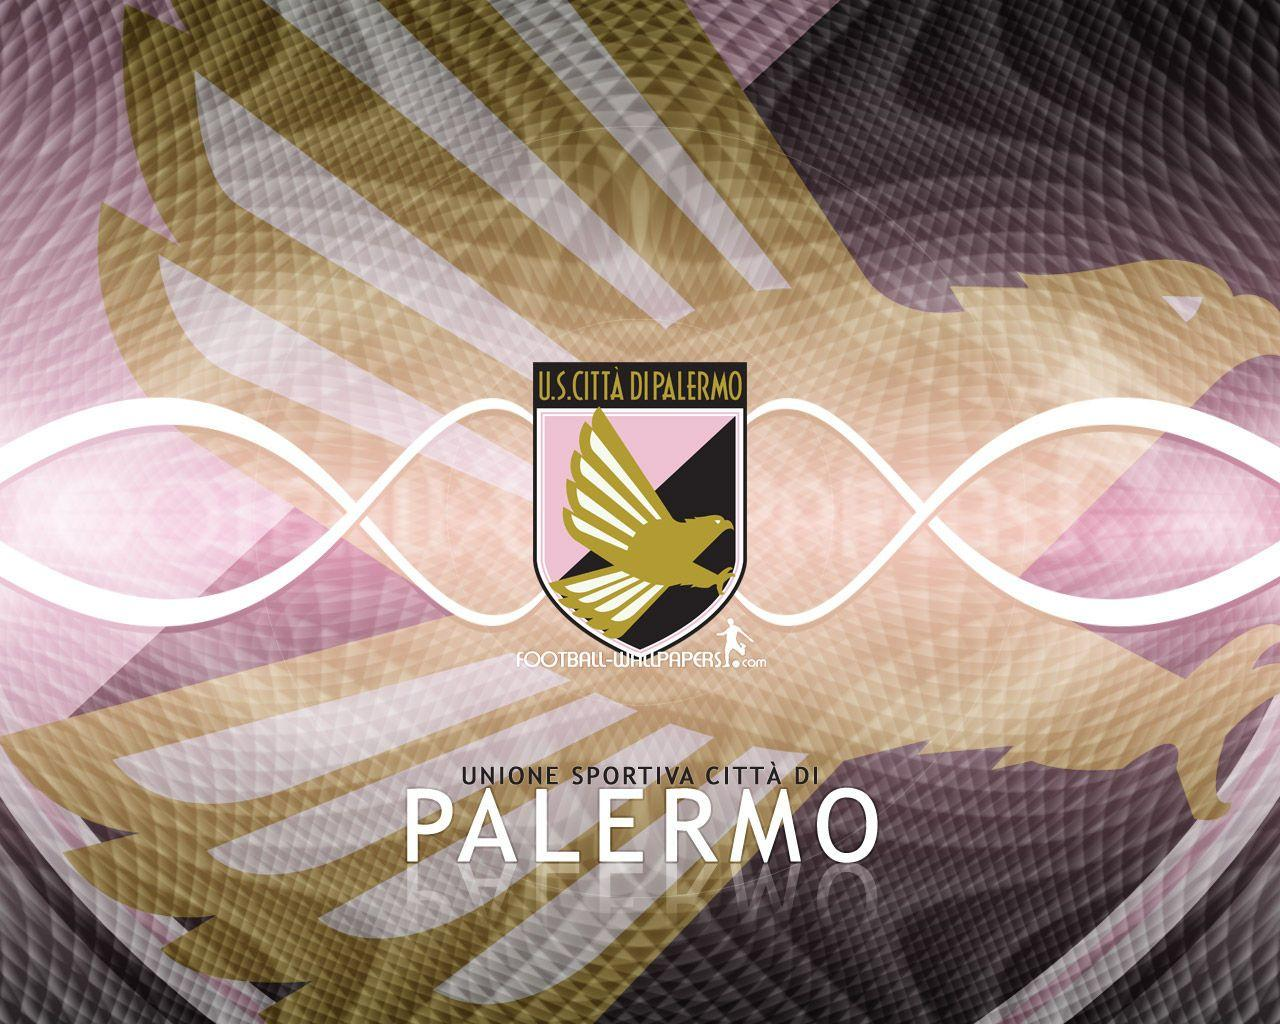 Palermo Logo Wallpaper Wallpapers: Players, Teams, Leagues Wallpapers